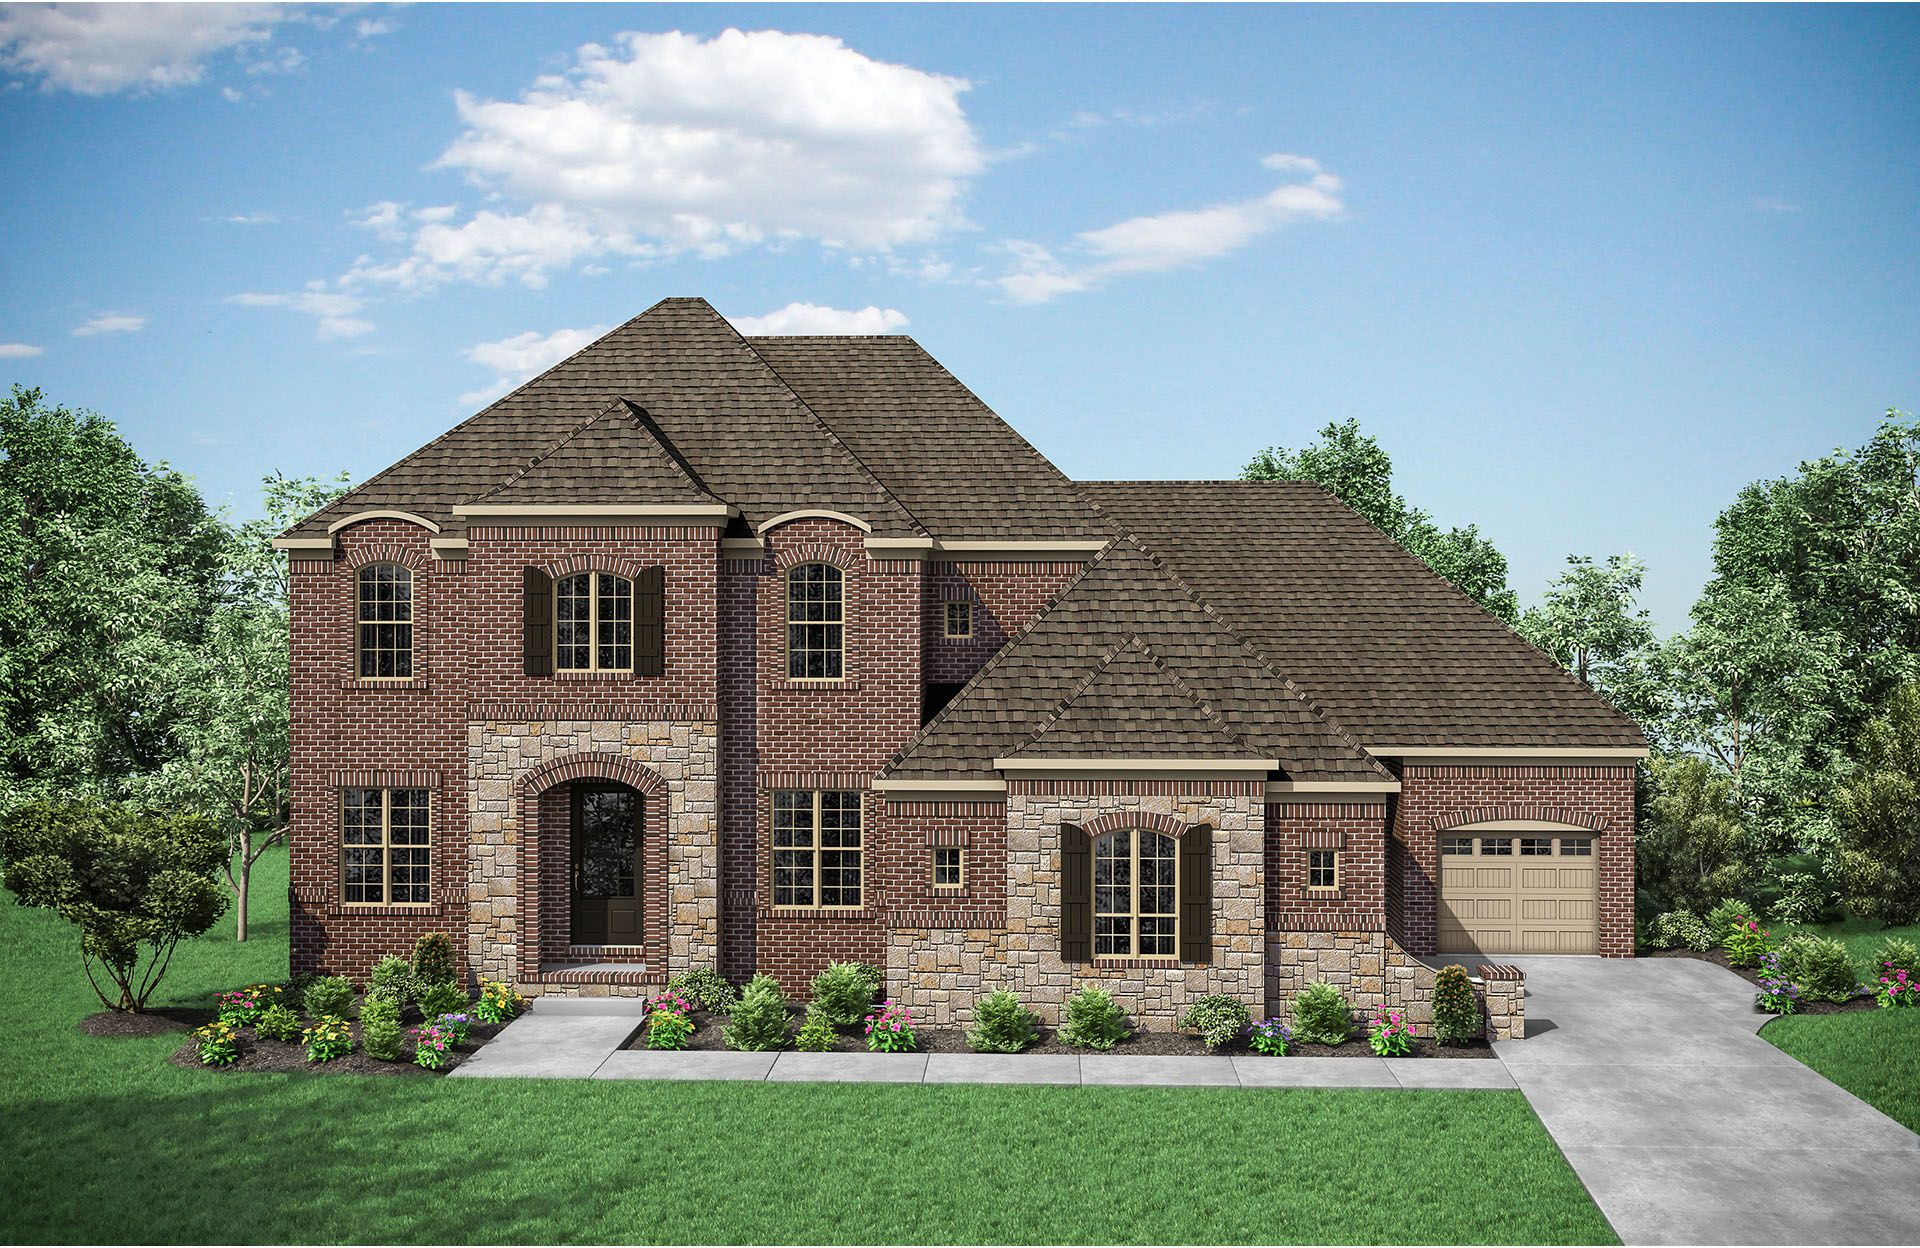 Single Family for Active at Traditions - Belterra Carnival Drive Brentwood, Tennessee 37027 United States